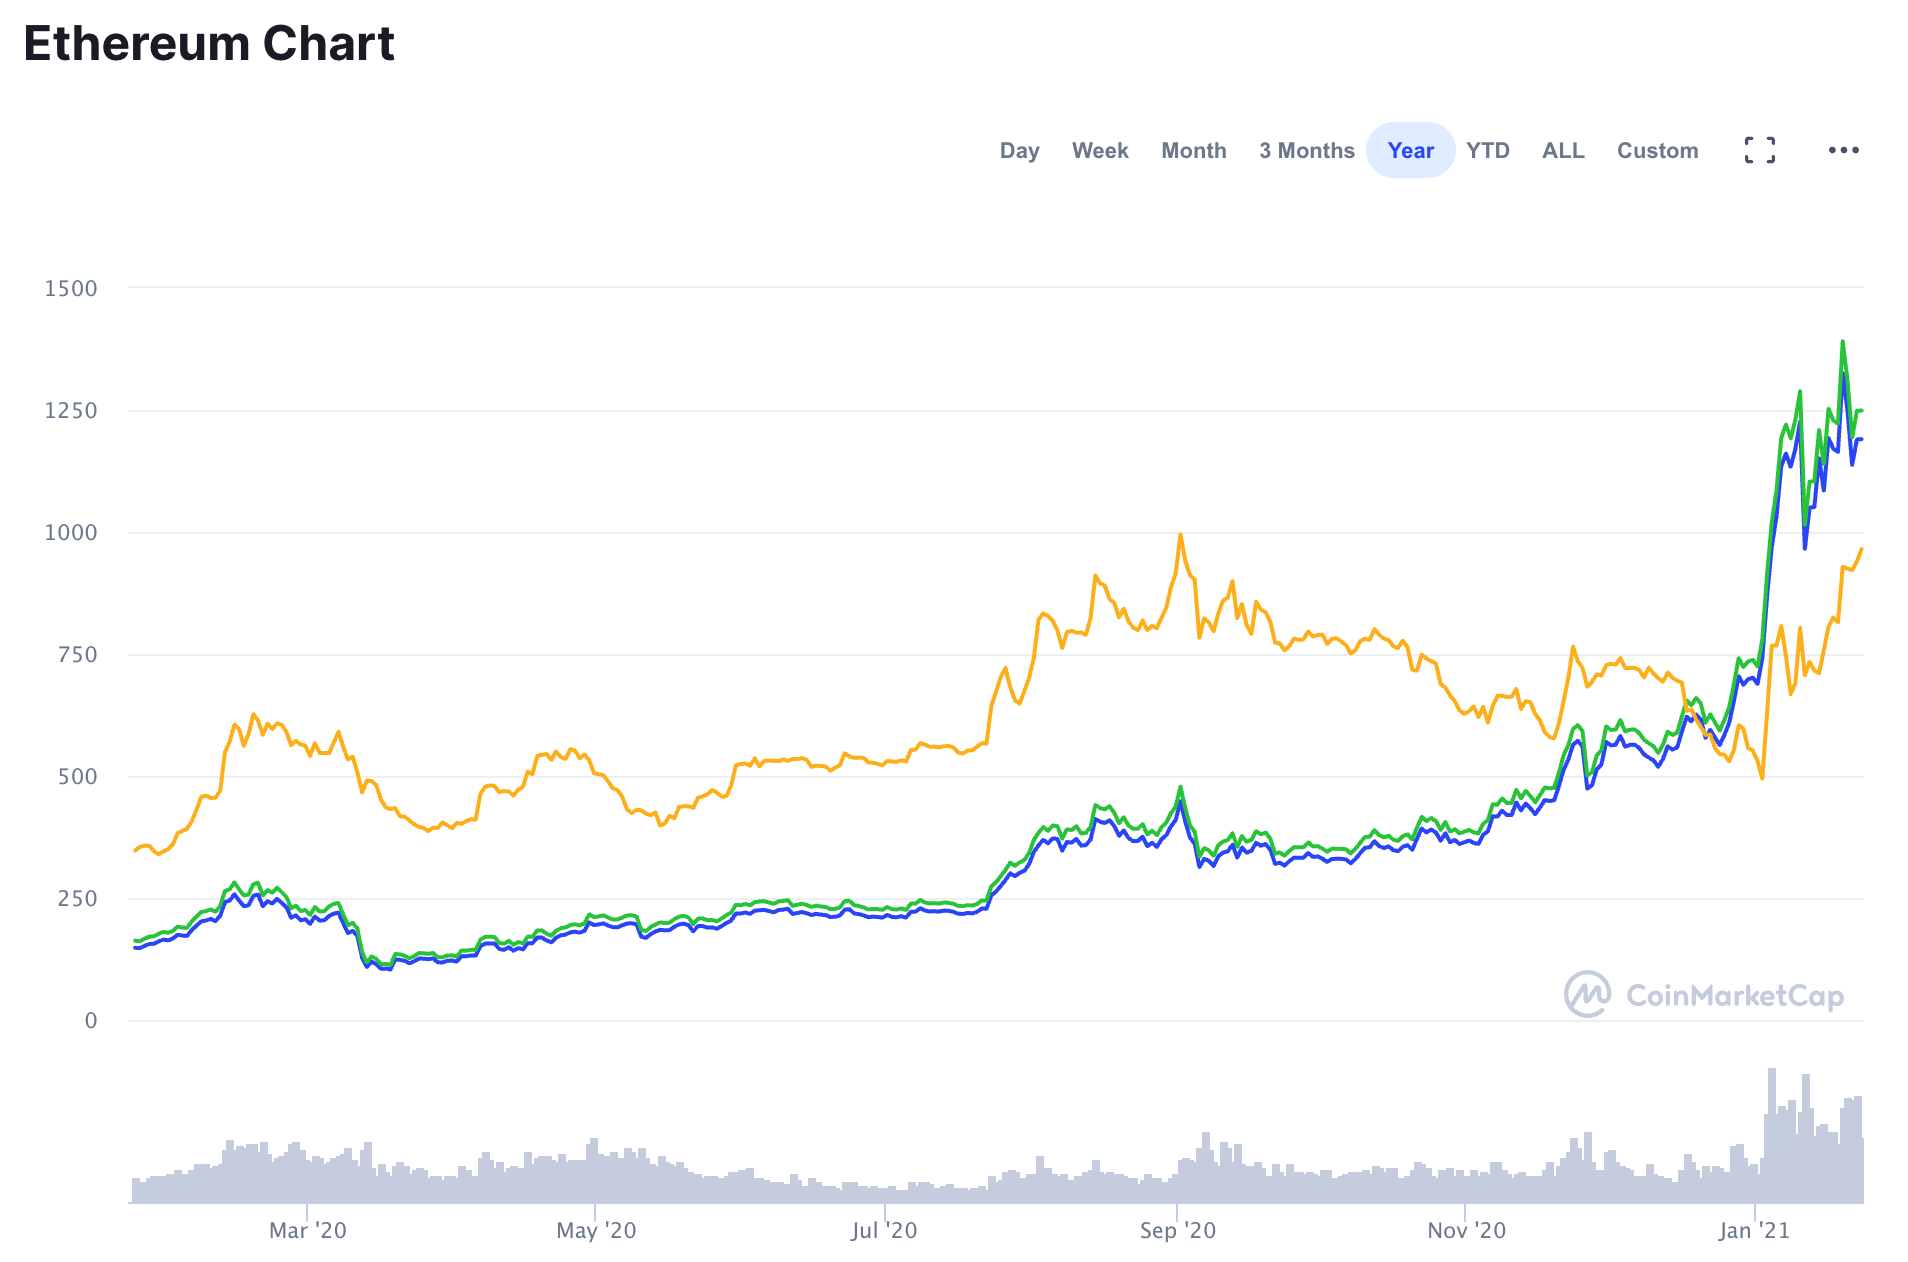 Trading Academy - Ethereum Futures Trading Begins In February. Explosive Move On The Horizon? 1